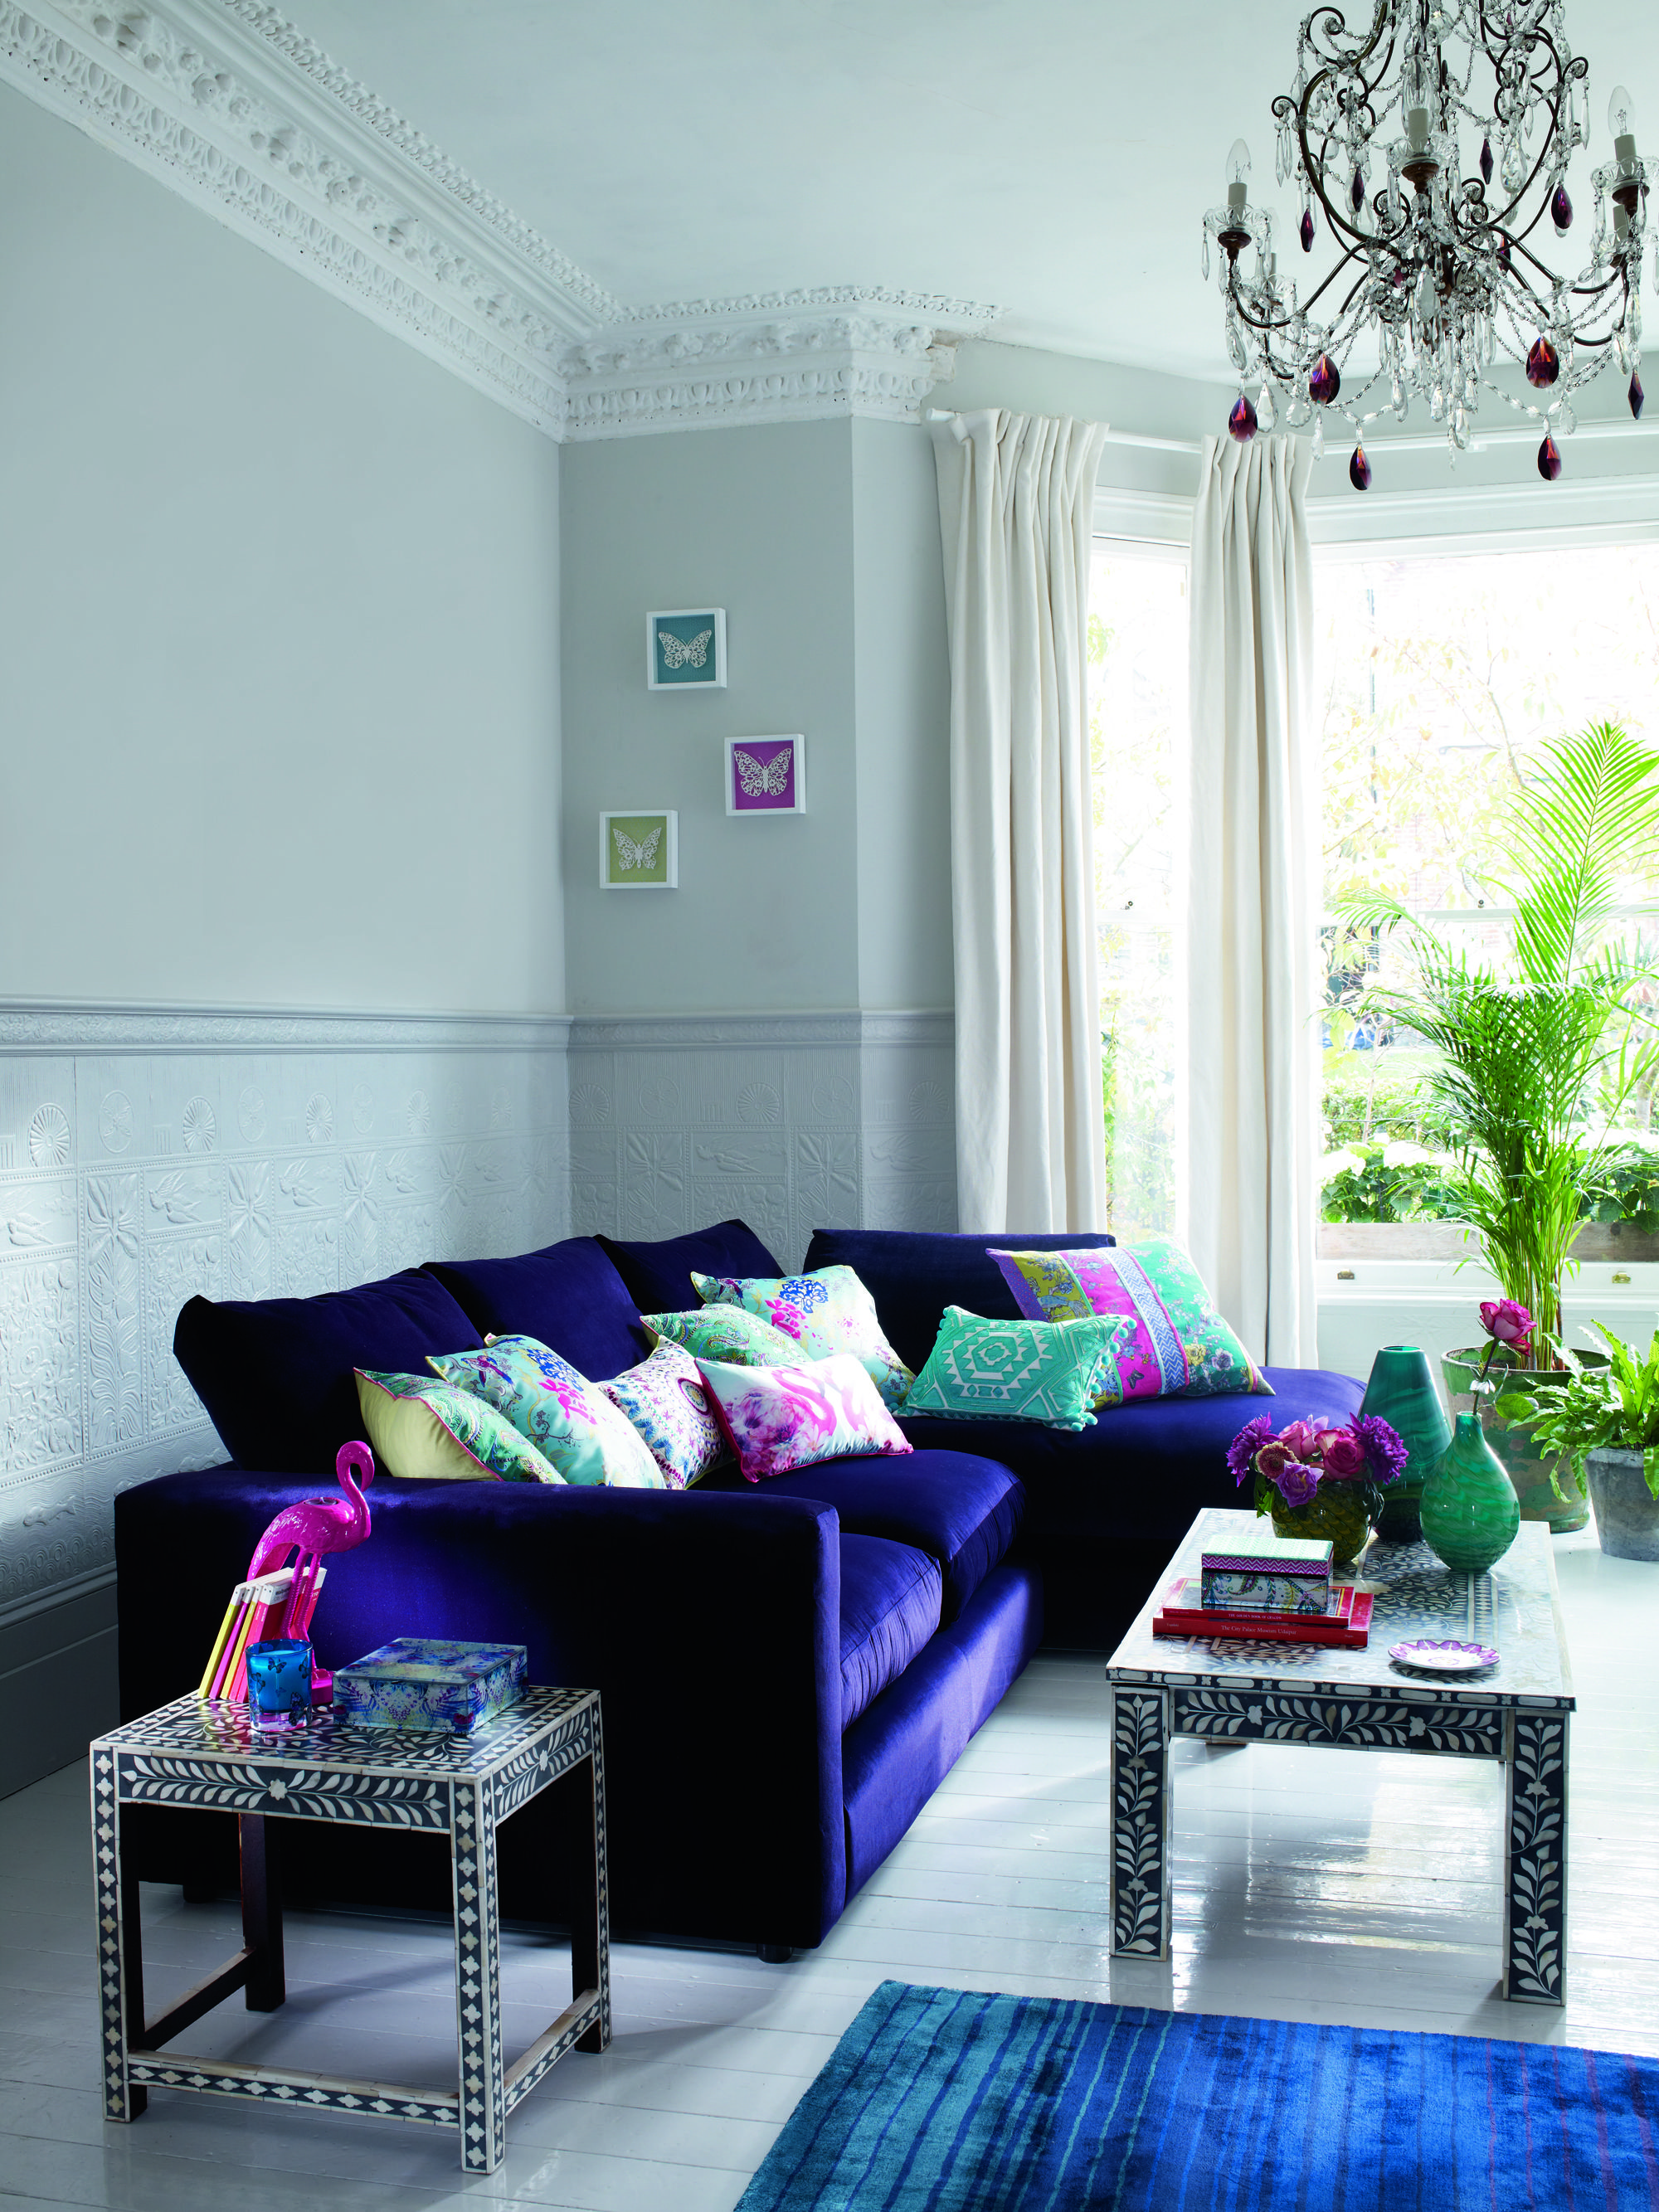 Bright Purple Sofa With Patterned Cushions Home Sofa Unique